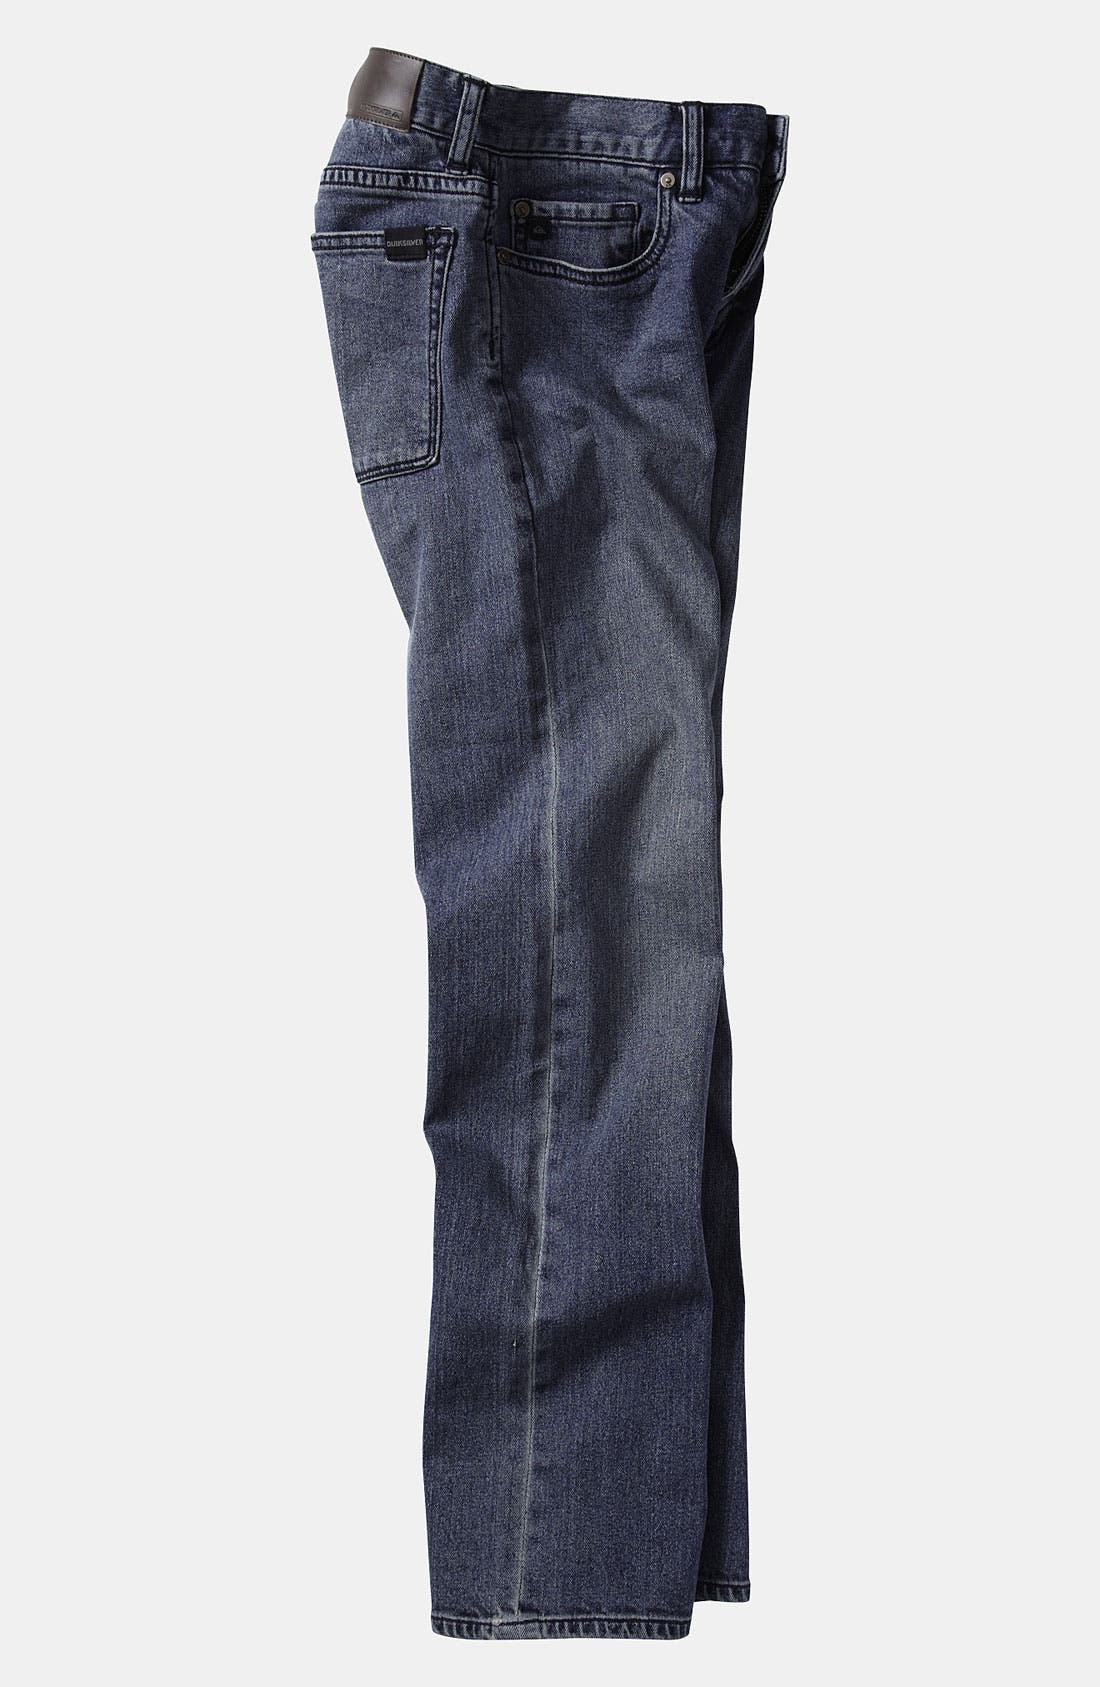 Alternate Image 3  - Quiksilver 'Zeppelin' Jeans (Big Boys)